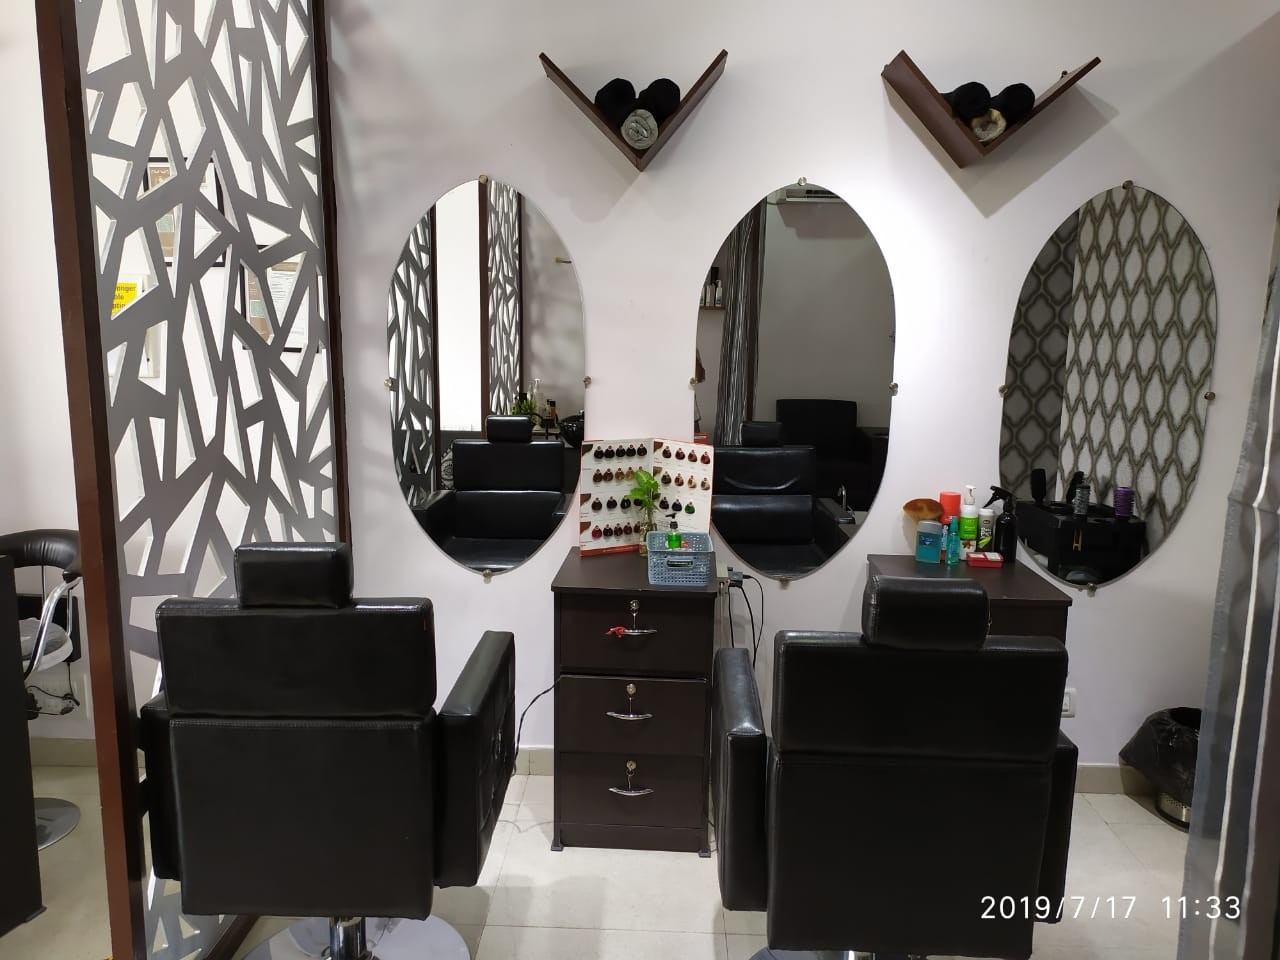 Colorfuzion Unisex Salon - GET HAIR CUT + HEAD WASH+ BLOW DRY FOR LADIES IN 199 ONLY.